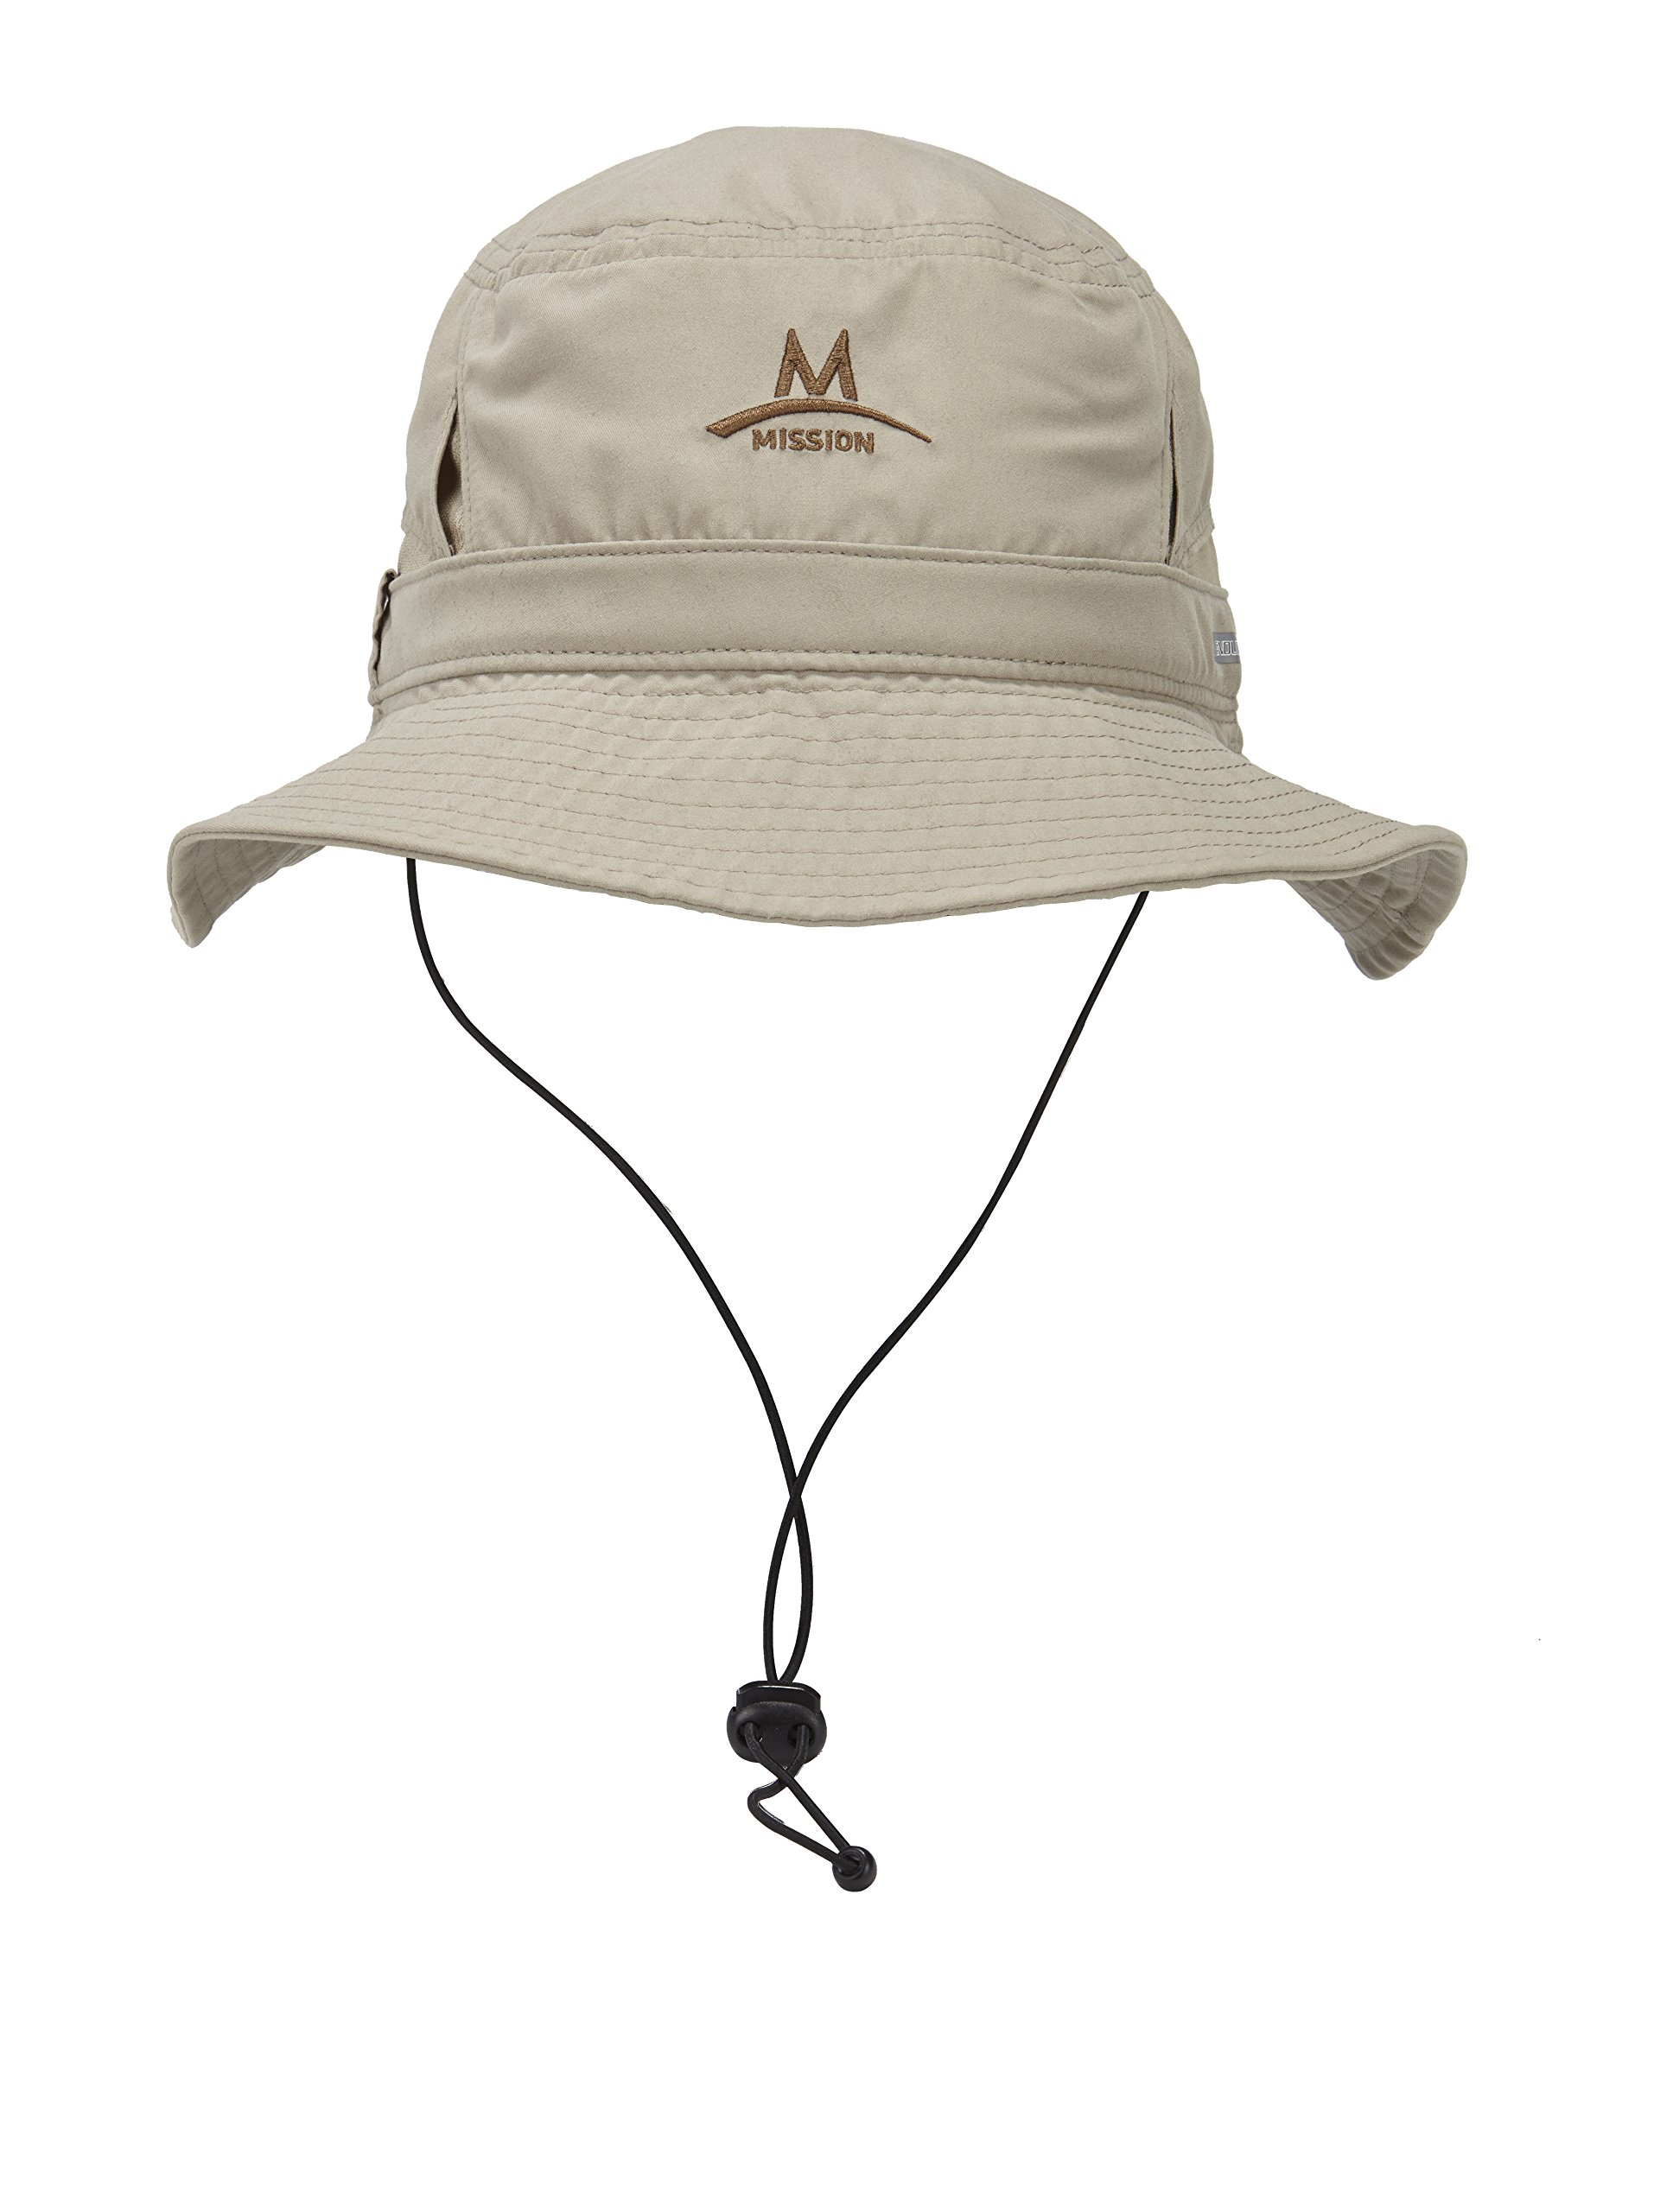 Mission Cooling Bucket Hat, Sand by Mission (Image #1)